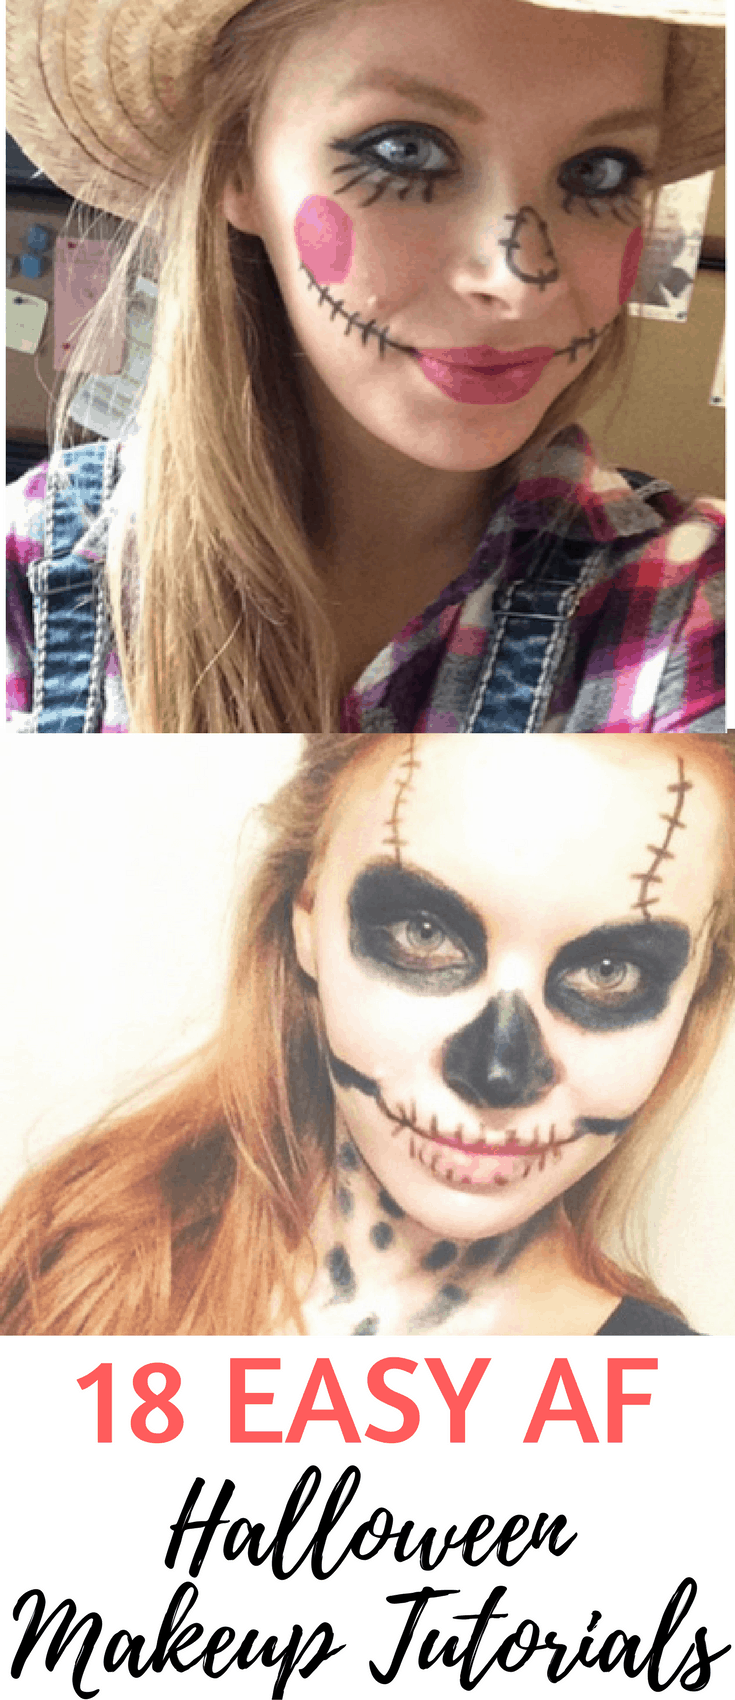 18 Easy, Step-by-Step Halloween Makeup Tutorials for Cheetah, Scarecrow, Zombie, Skeleton, Fairy, Skull, Doll and more for a Last-Minute, Simple Halloween Costume #halloween